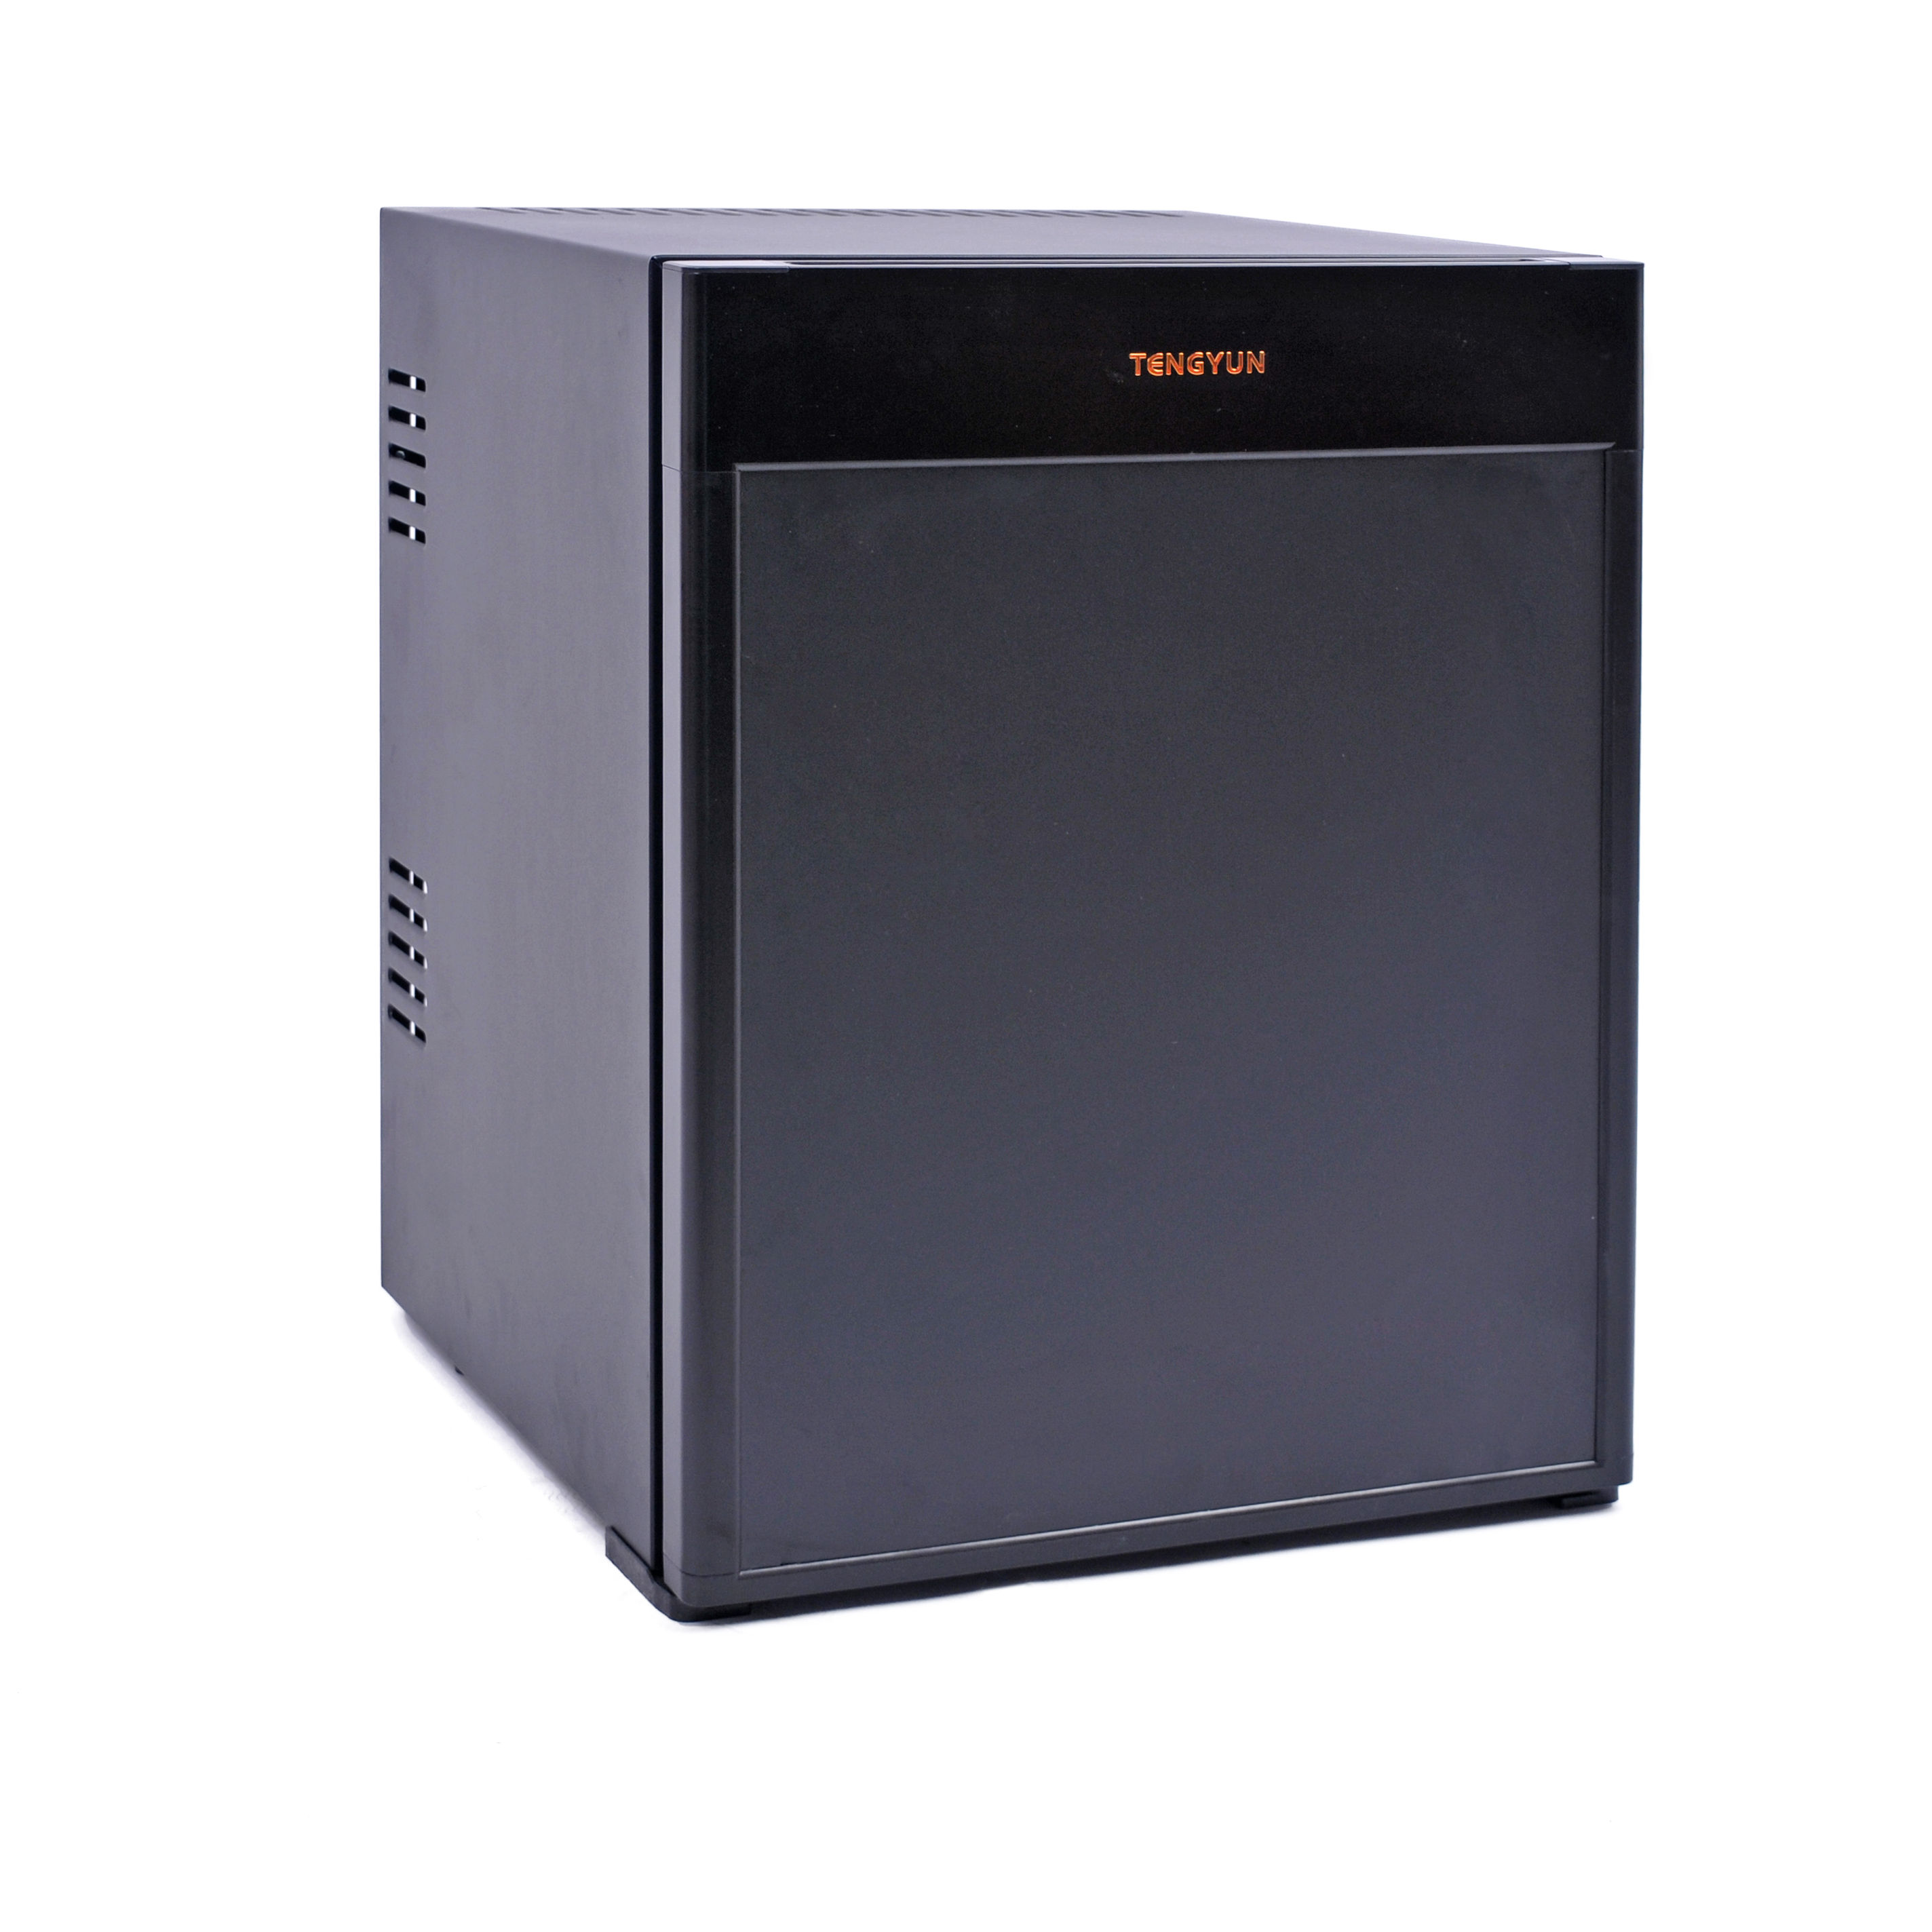 Refrigerators freezers home thermoelectric mini fridge minibar refrigerador mini refrigerator